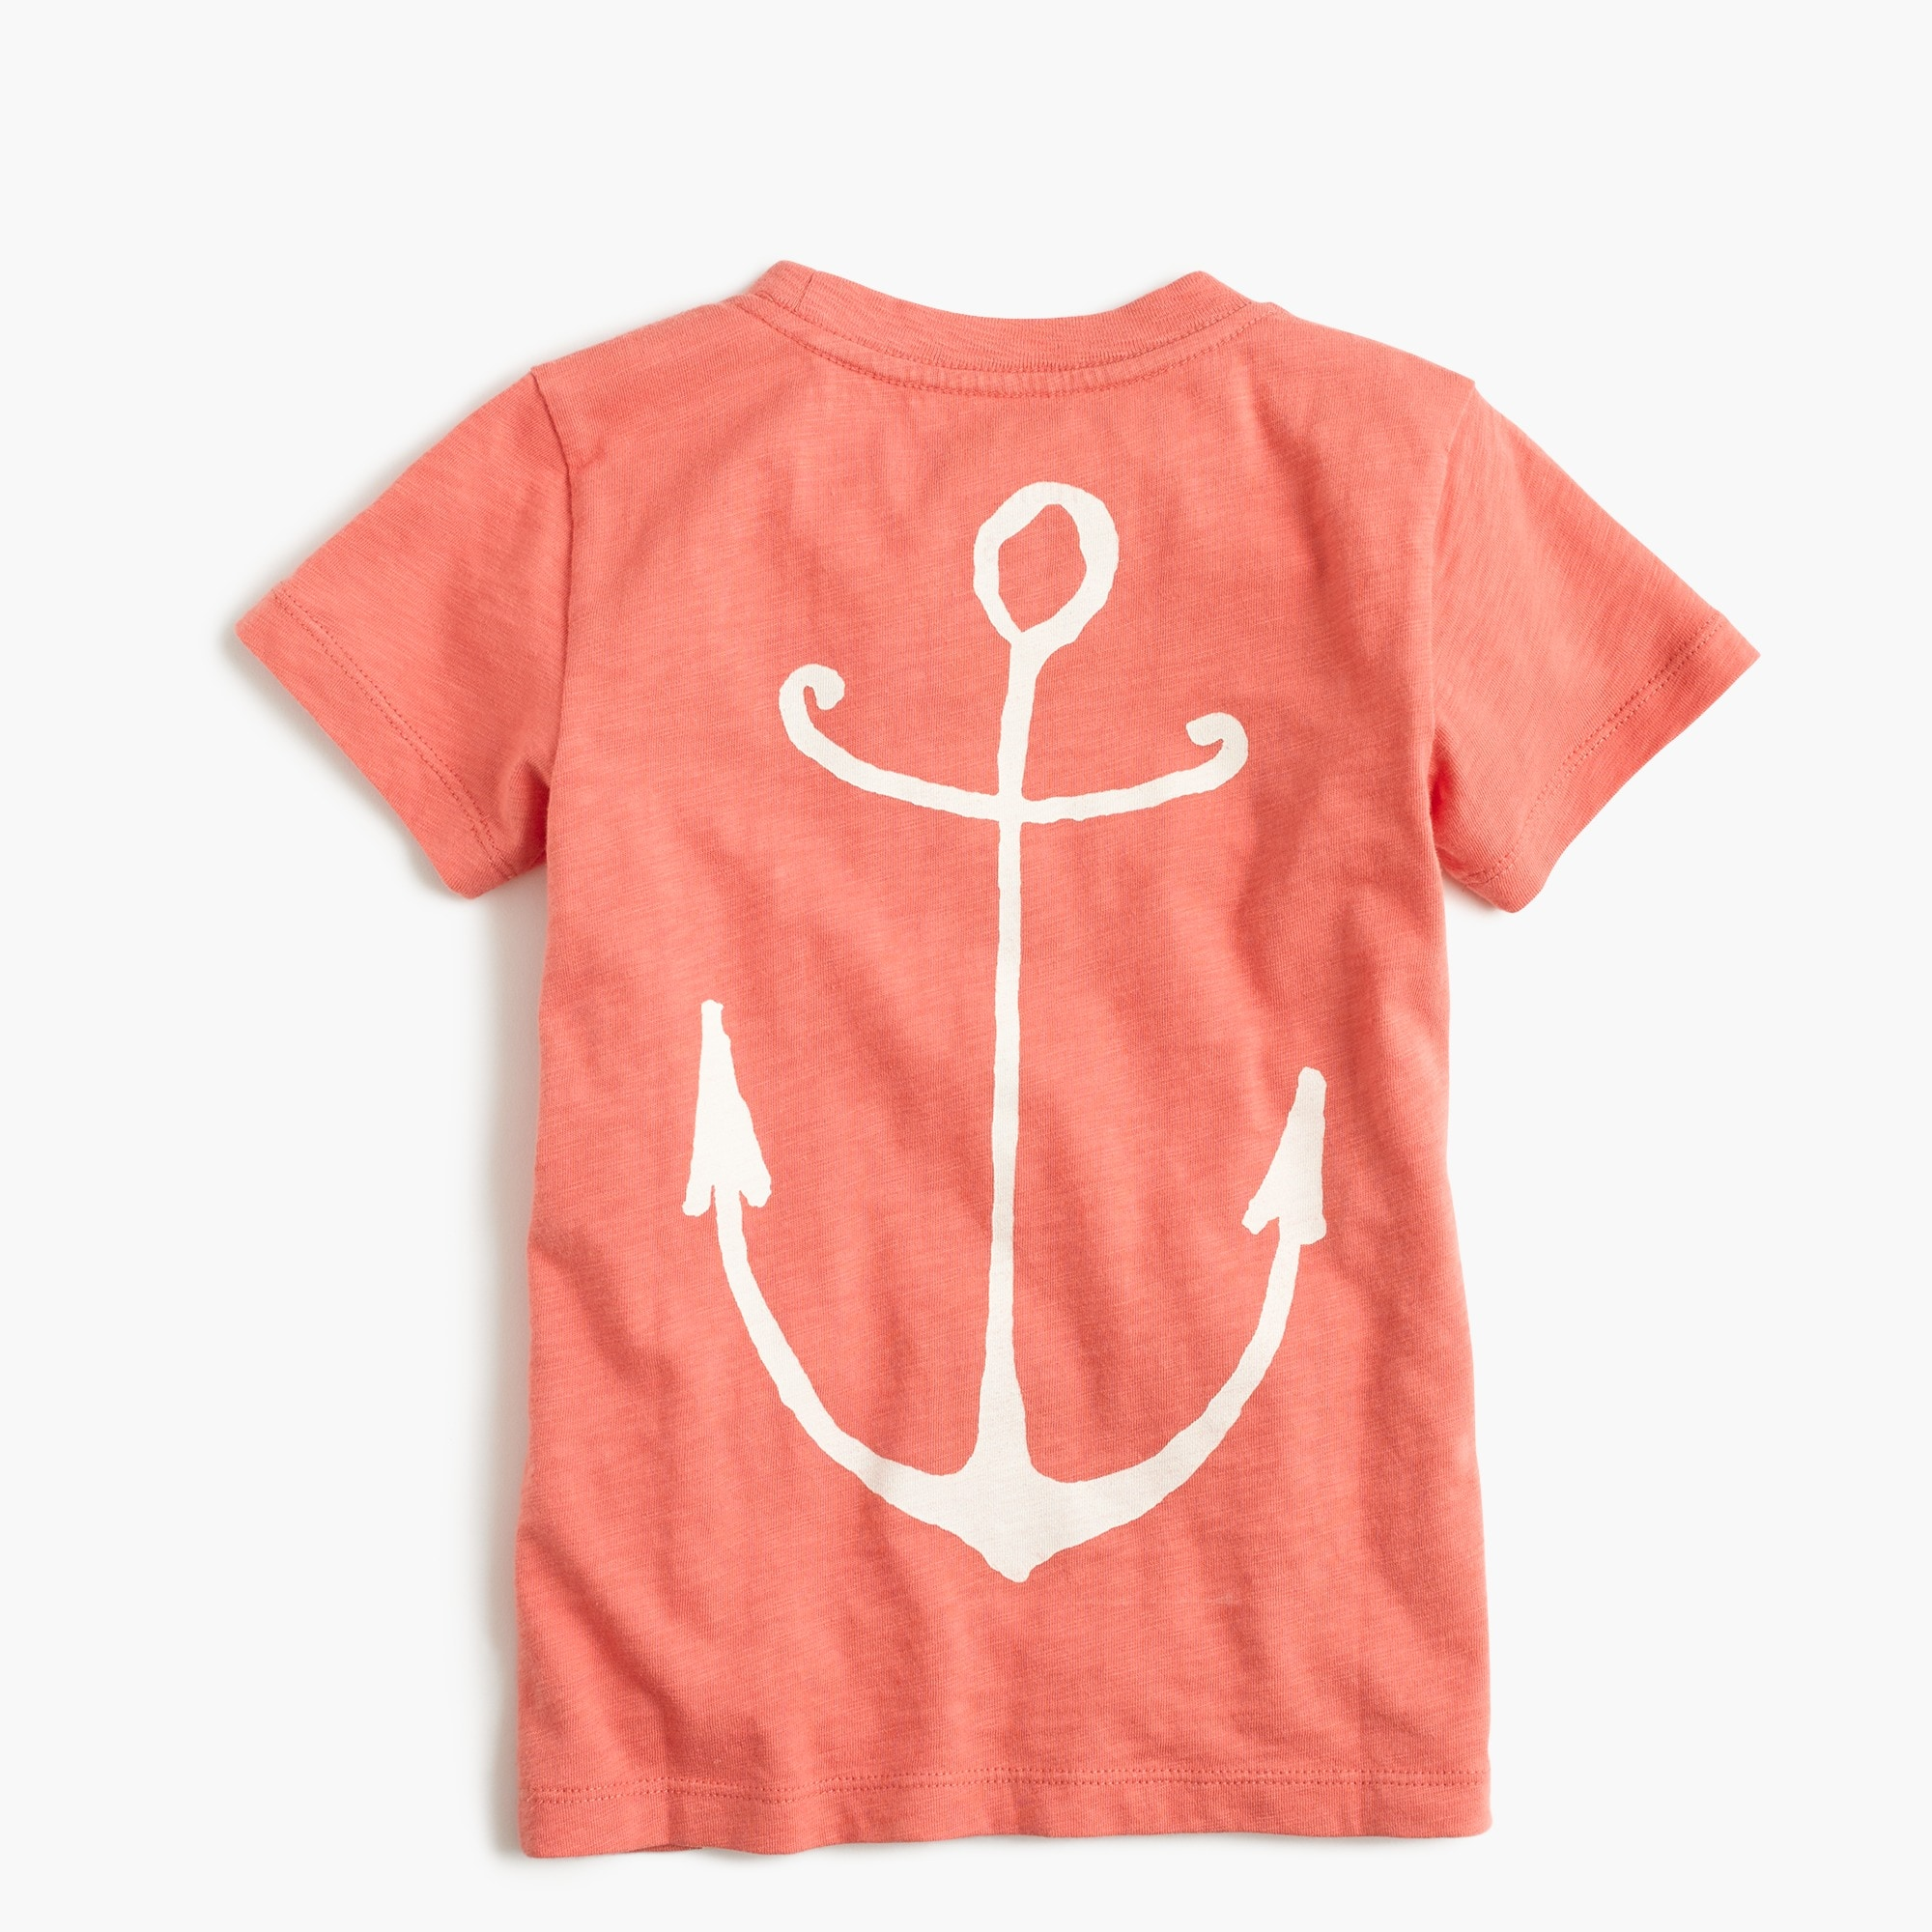 Boys' sailboat T-shirt